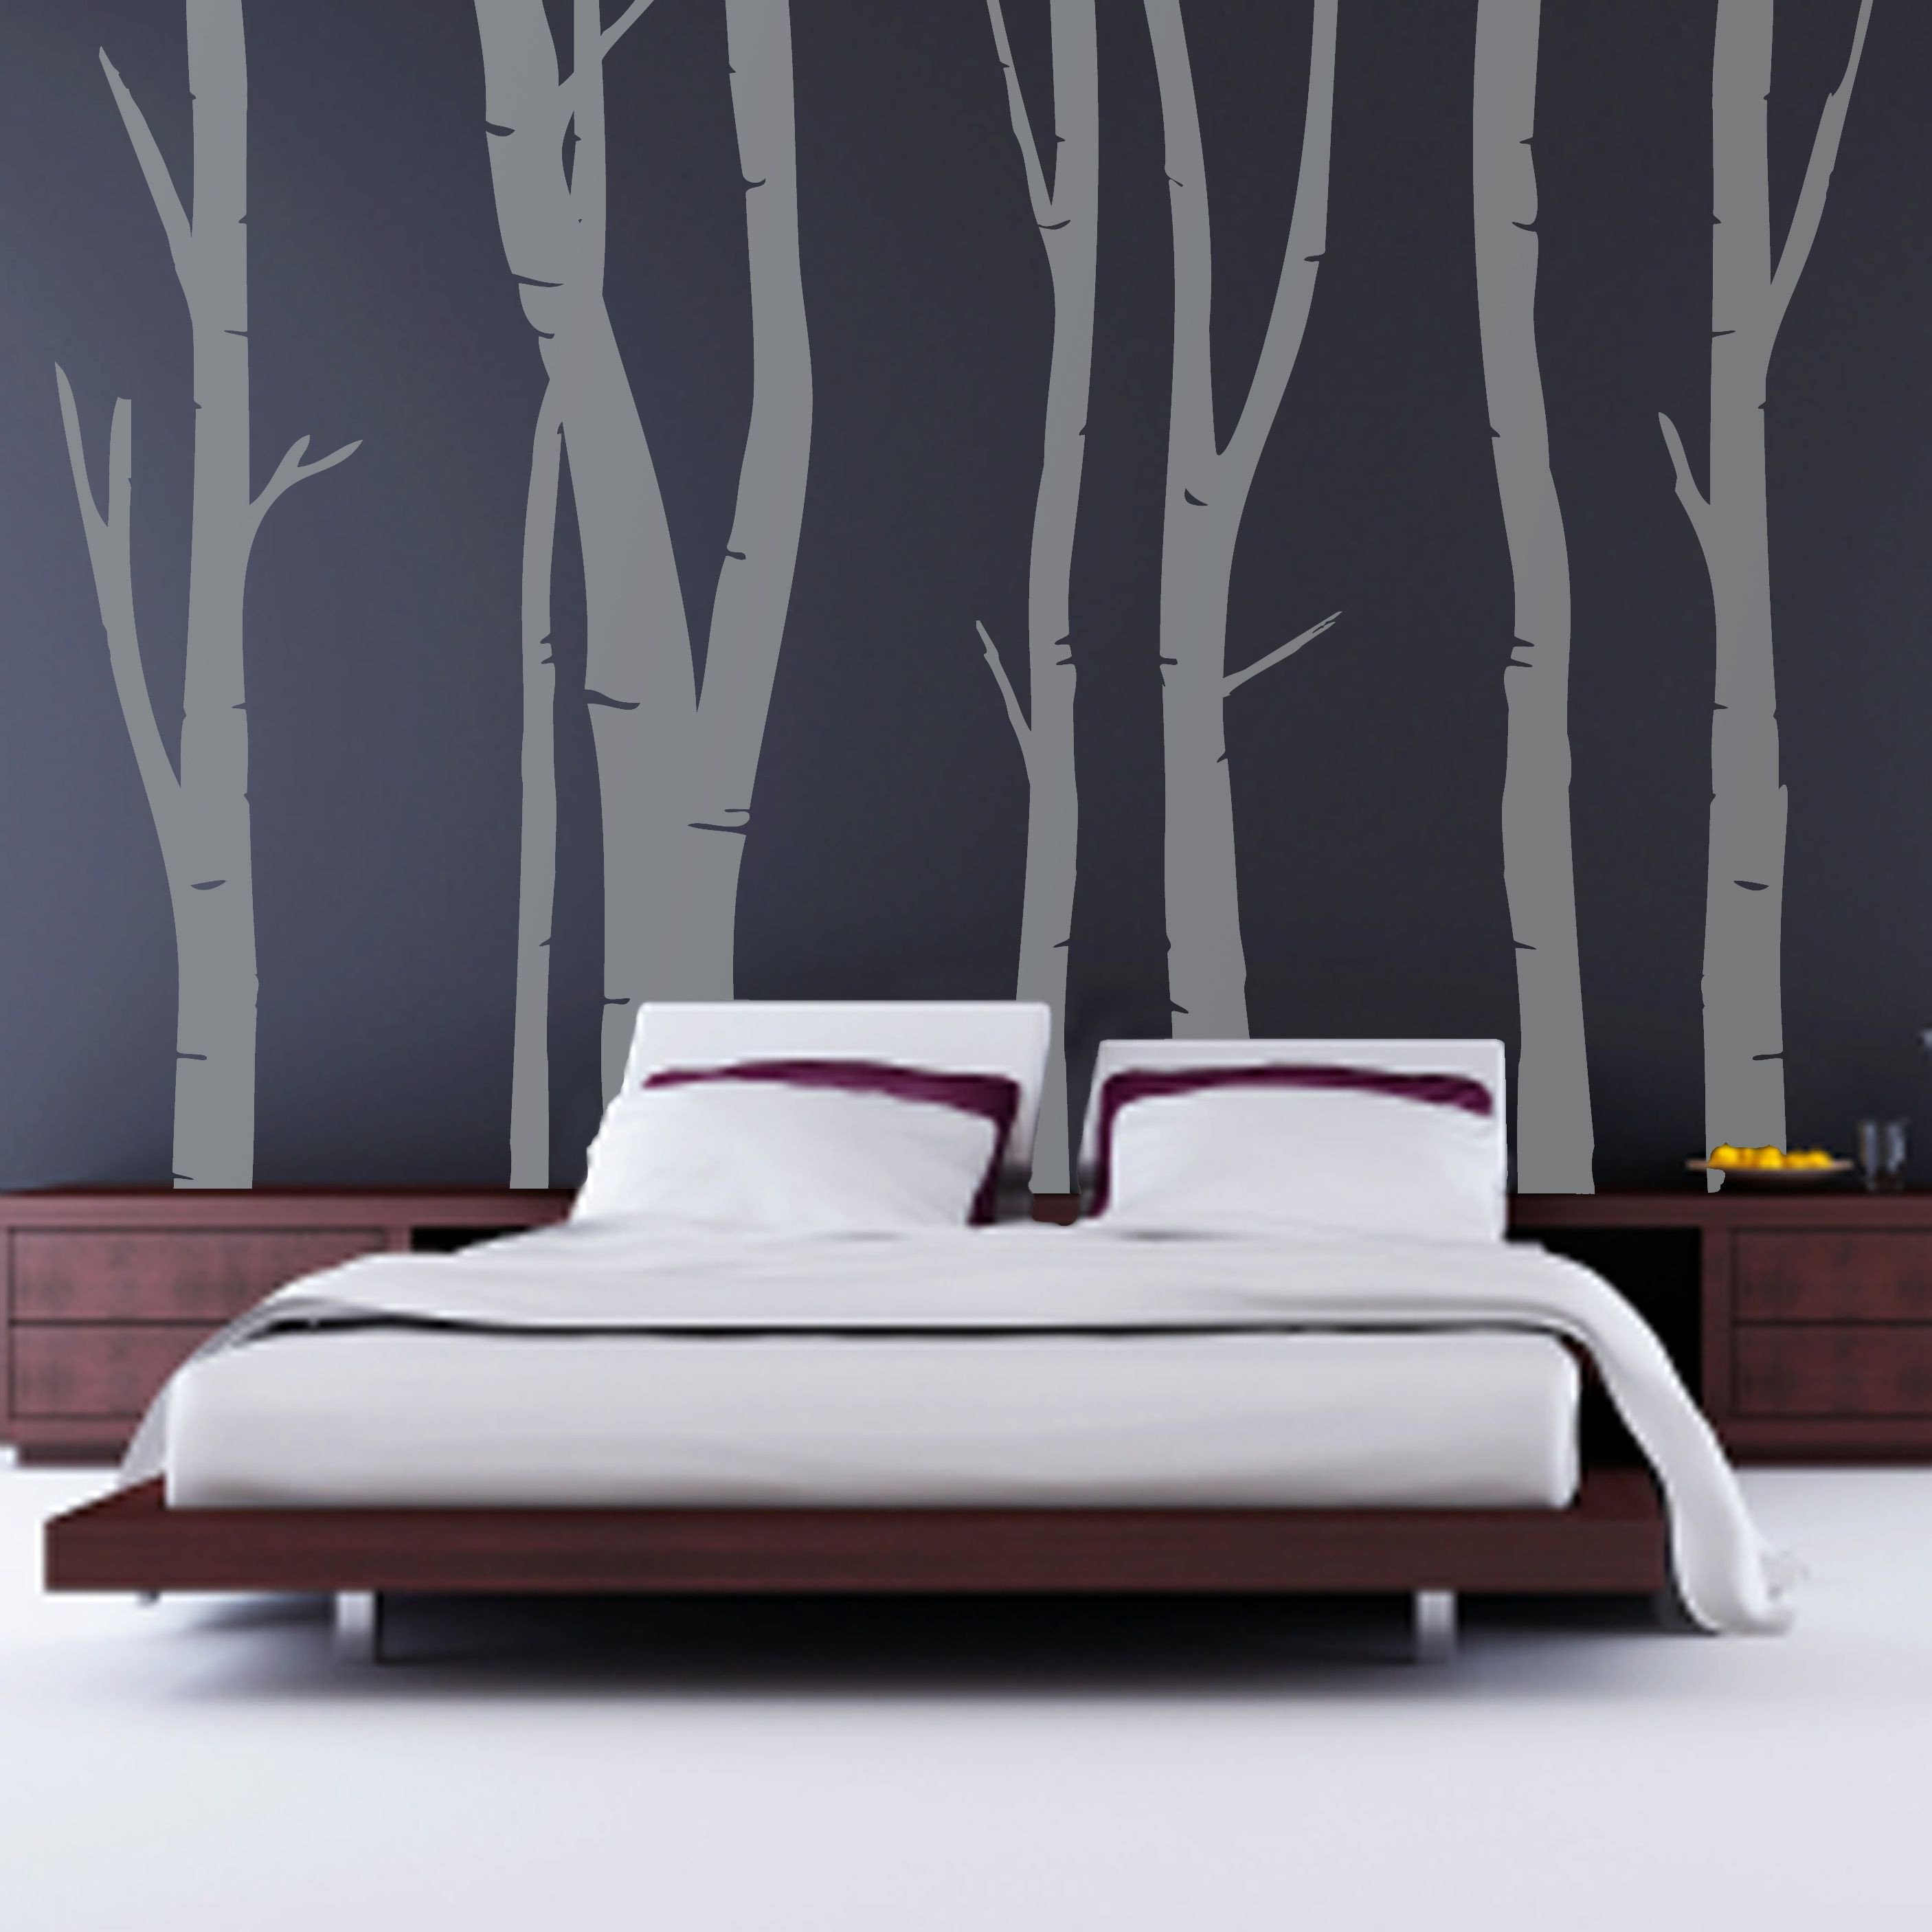 Wallpapers for Bedroom Wall Best Of Bedroom Paint Ideas You May Love to Try for Your Bedroom